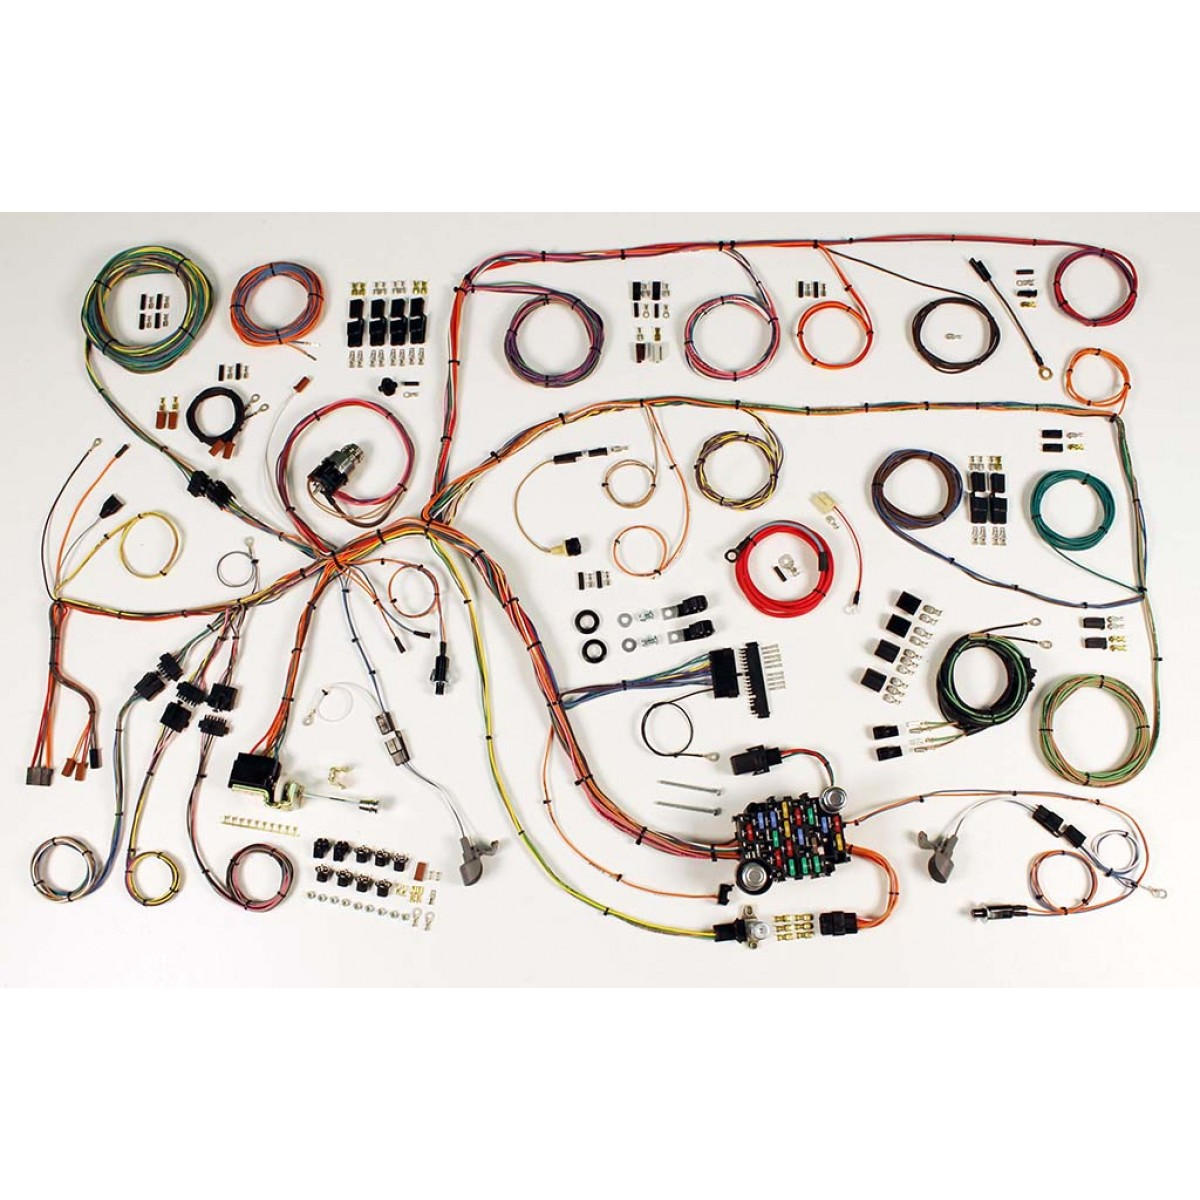 510379 complete wiring harness kit 1960 1964 ford falcon 1960 1965 mercury comet part 510379 1960 1964 ford falcon complete wiring harness kit 1960 1964 ford ford wiring harness kits at n-0.co